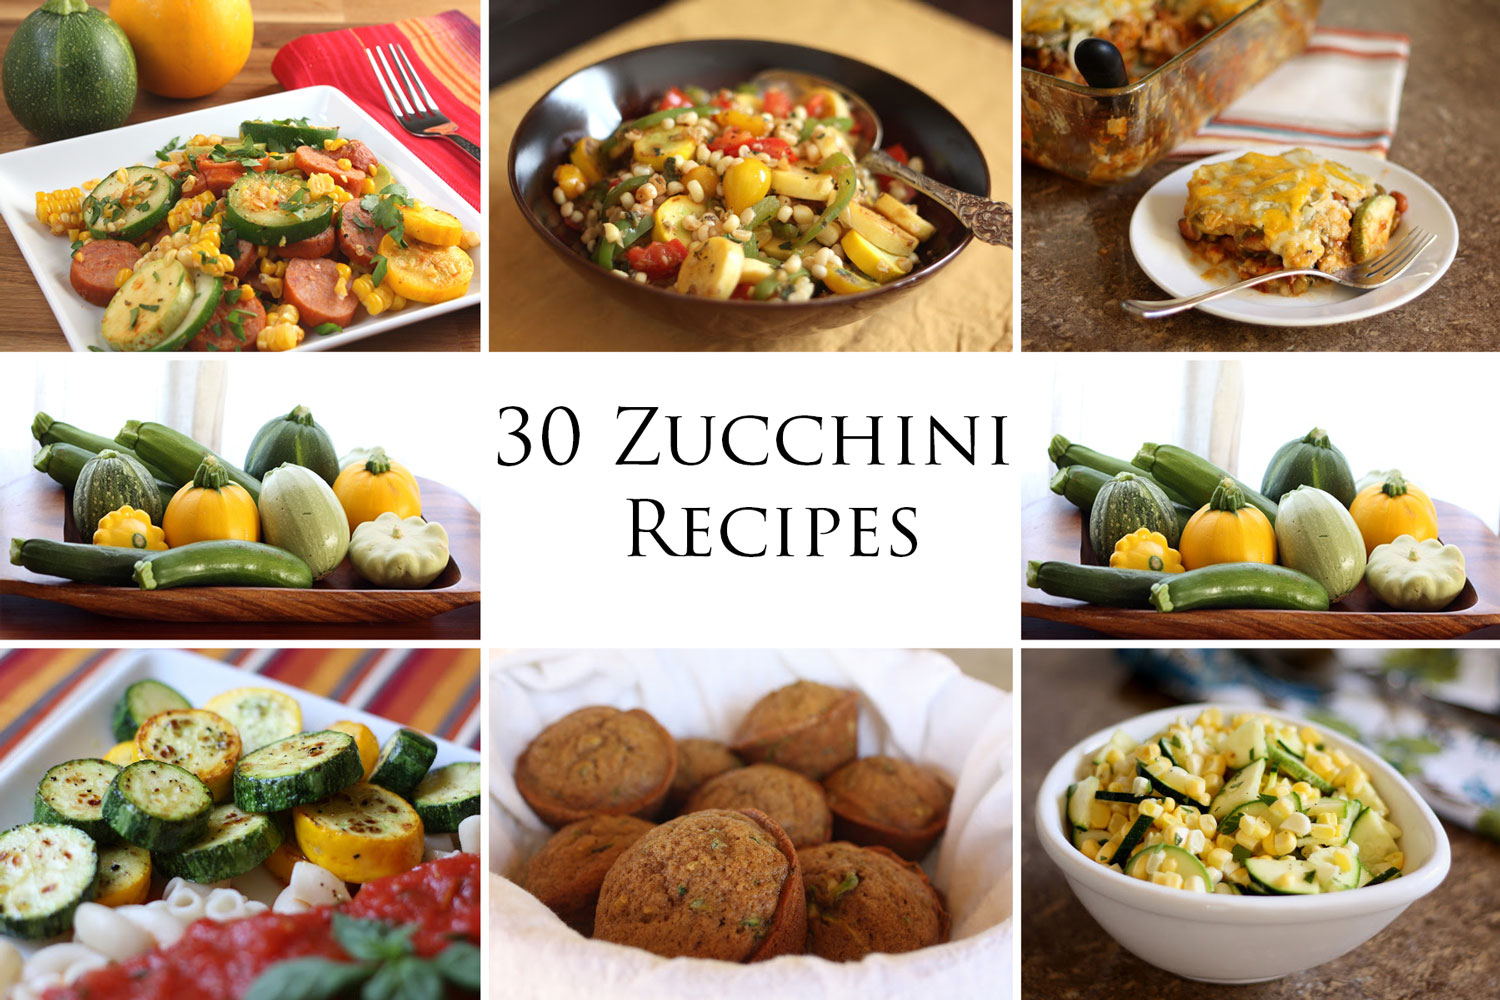 30 Must Try Zucchini Recipes - breads, breakfasts, main dishes, and sides! by Barefeet In The Kitchen